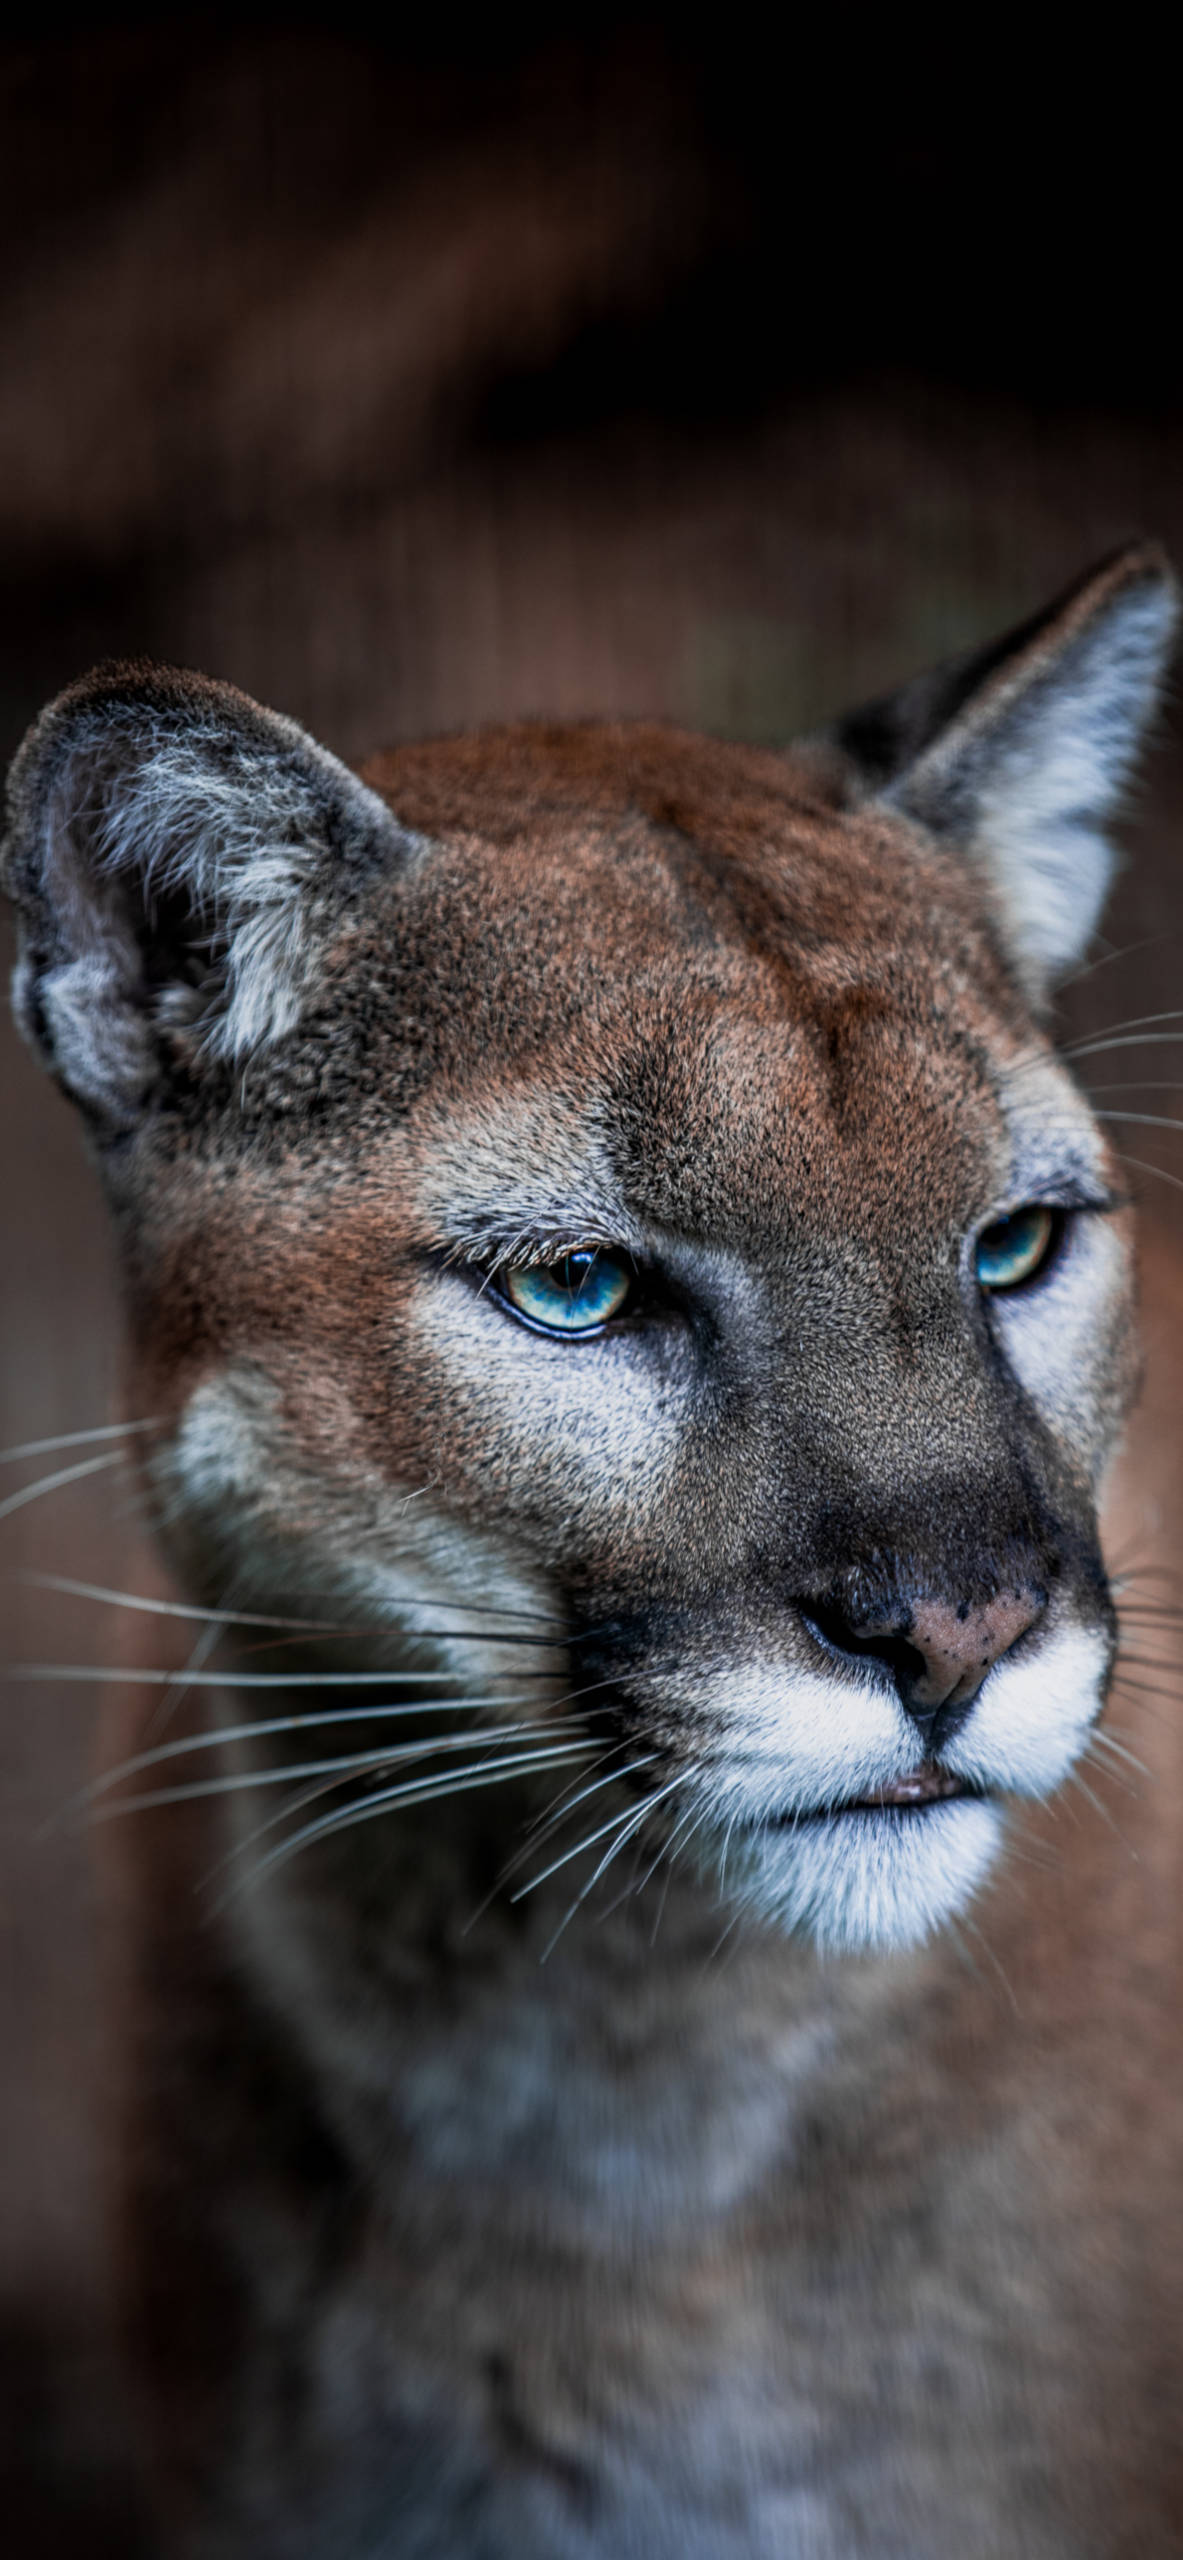 iPhone wallpapers cougar face Cougar